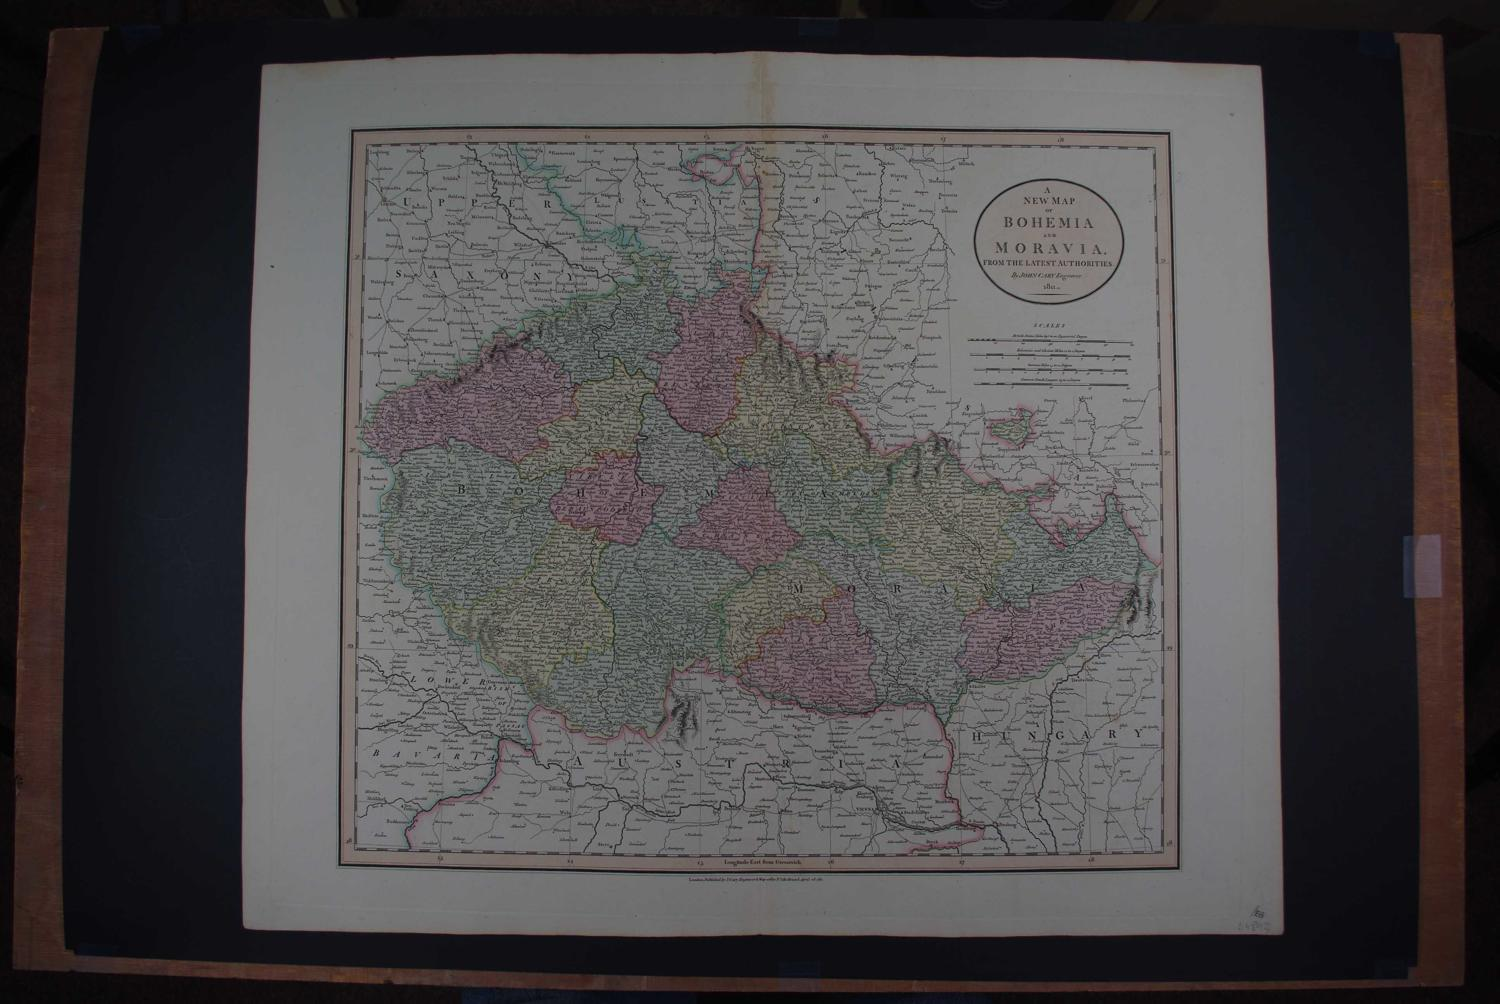 A new map of Bohemia and Moravia from the latest authorities by John C